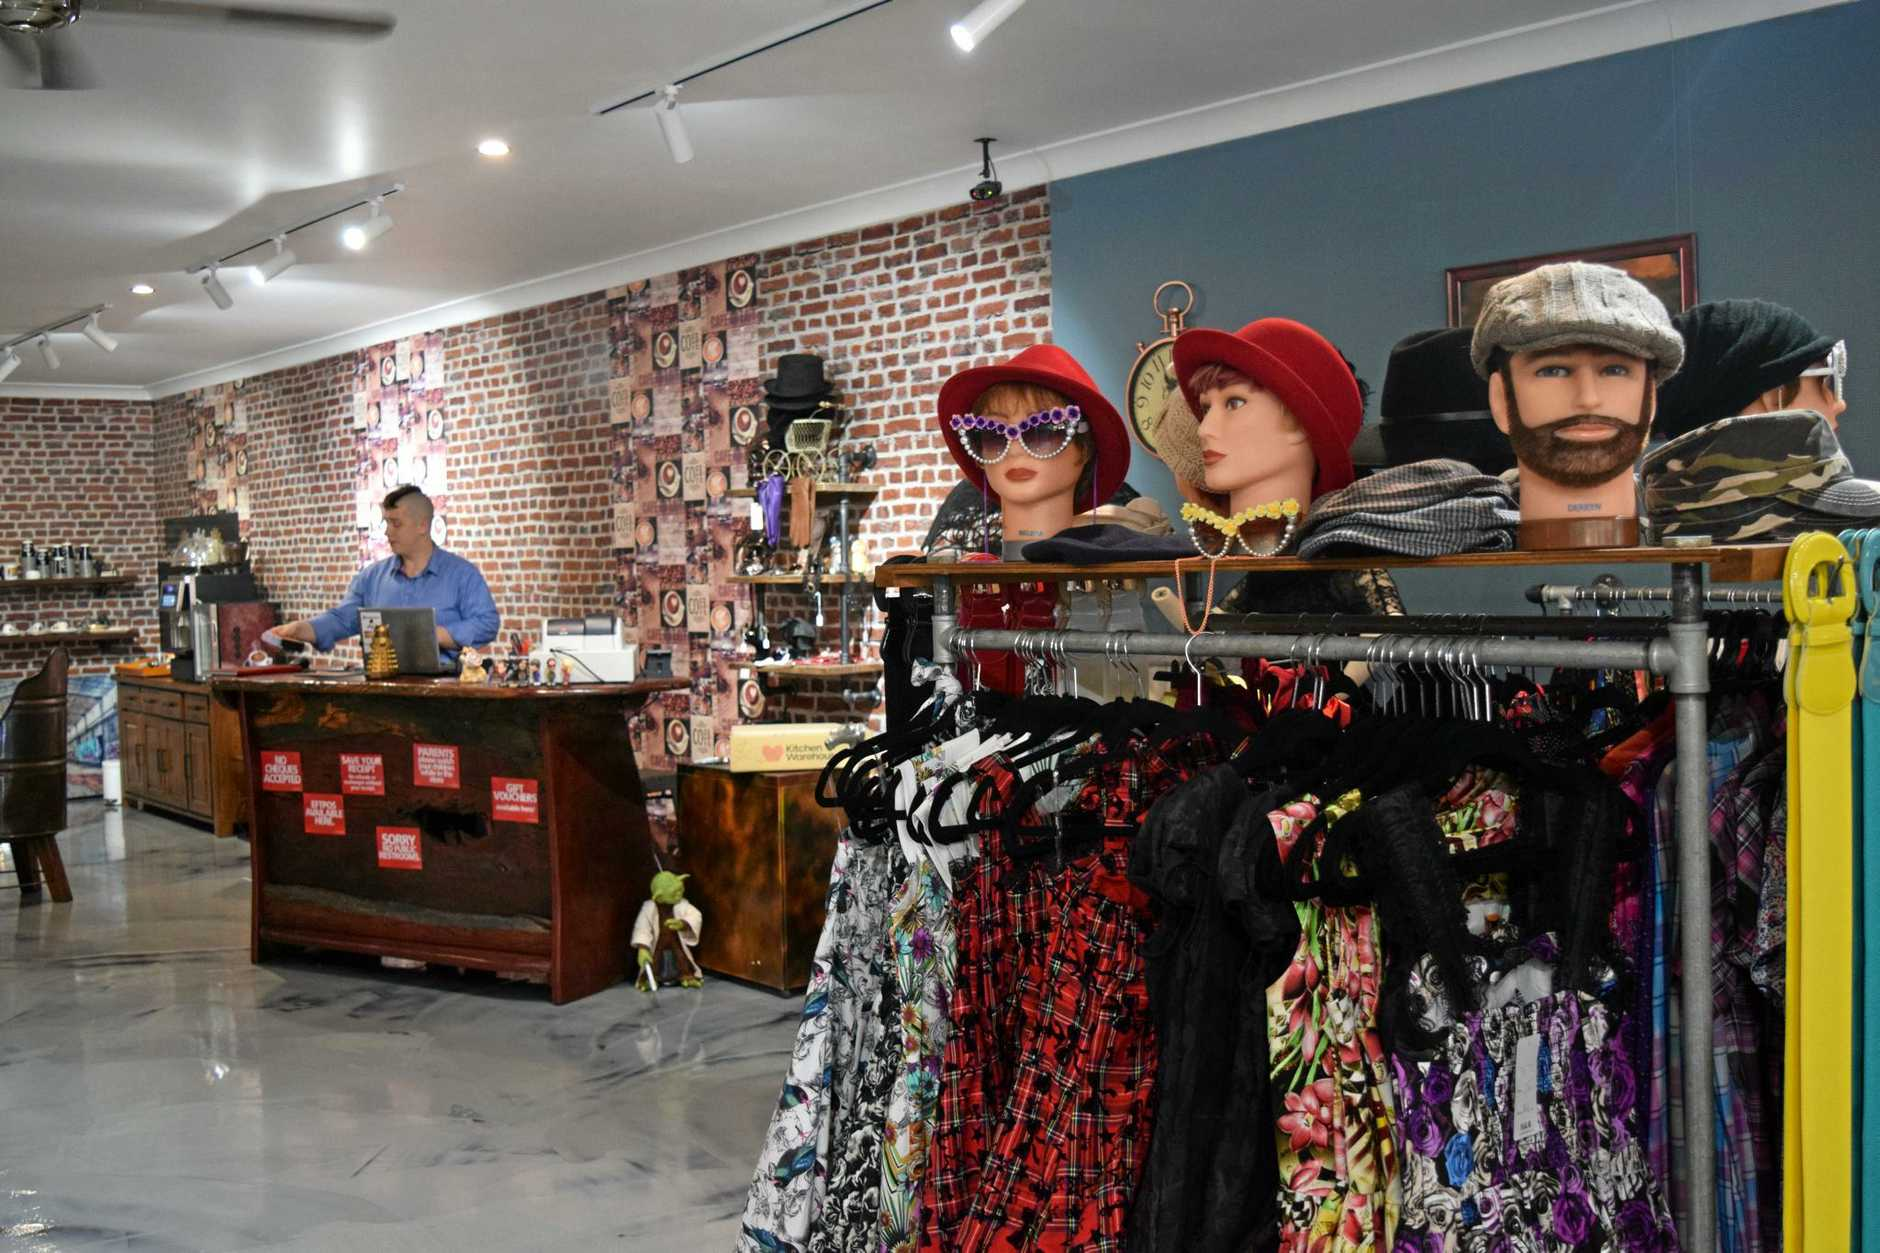 STEAMPUNK: The shop, open for almost a year, has already generated a keen following in the region.